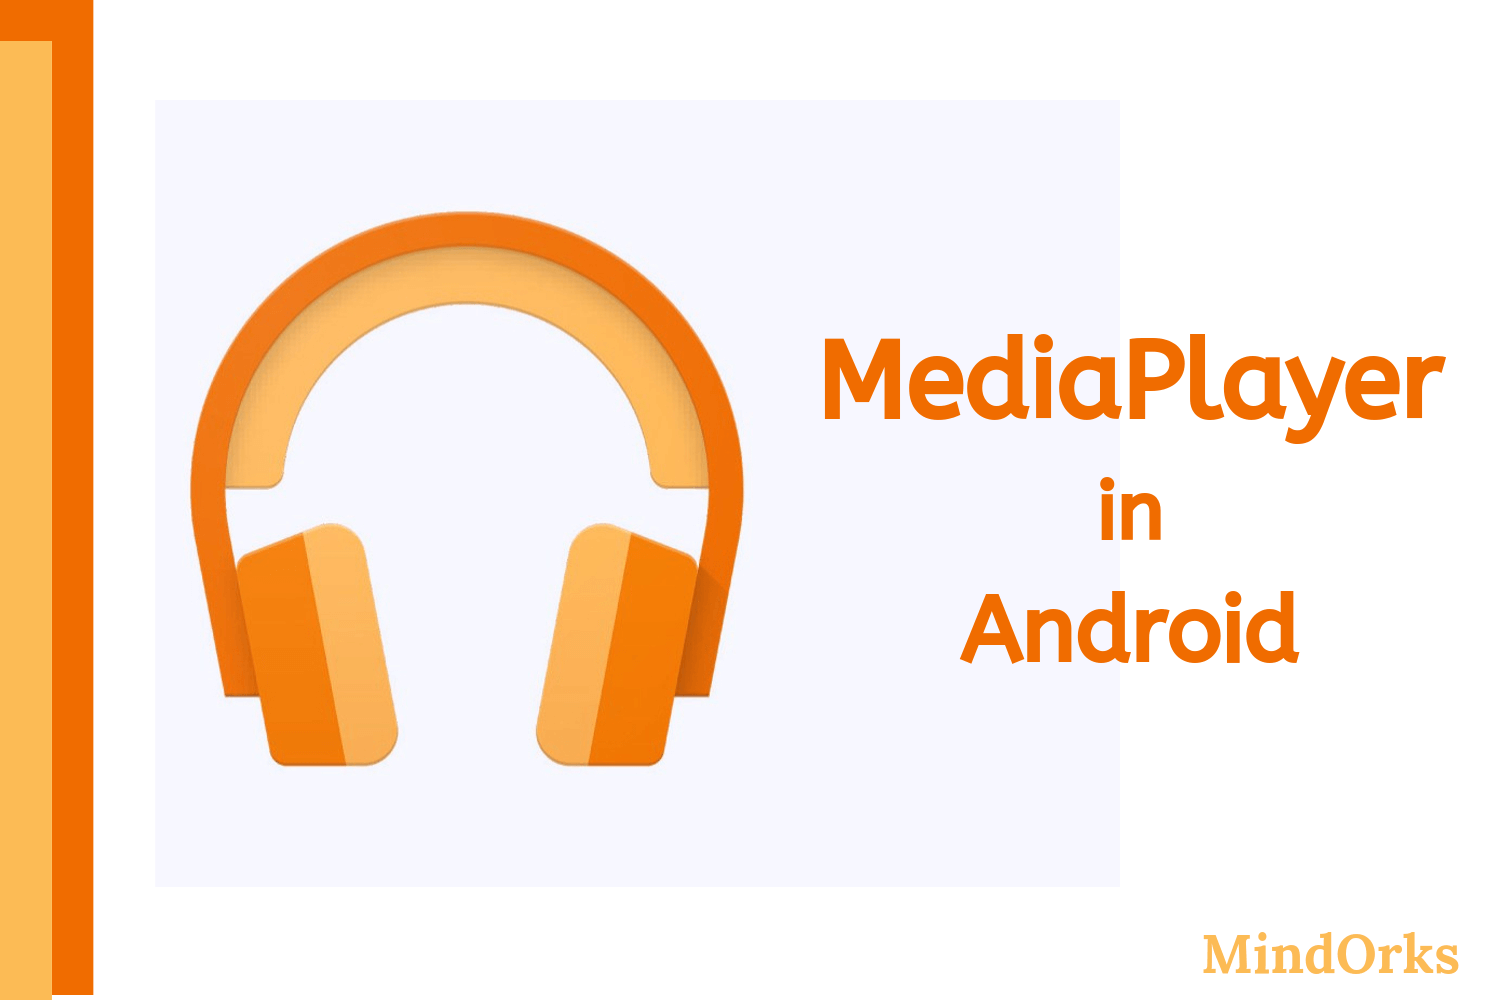 Using MediaPlayer to play an Audio File in Android